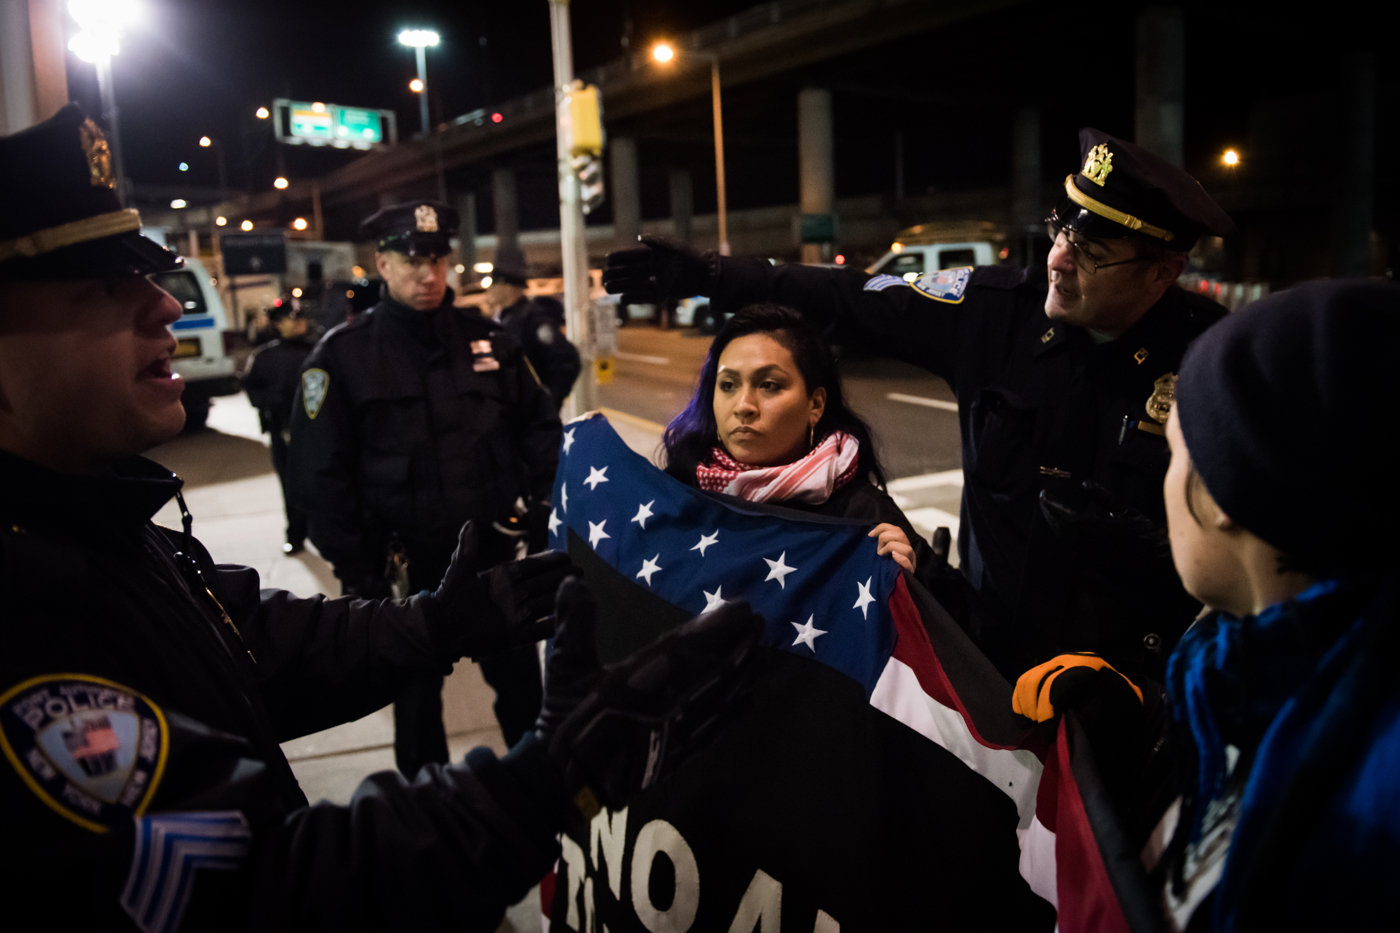 Port Authority police officers try to move a woman carrying a flag at John F. Kennedy International Airport in New York, NY on Saturday, January 28, 2017. Credit: Mark Kauzlarich for CNN